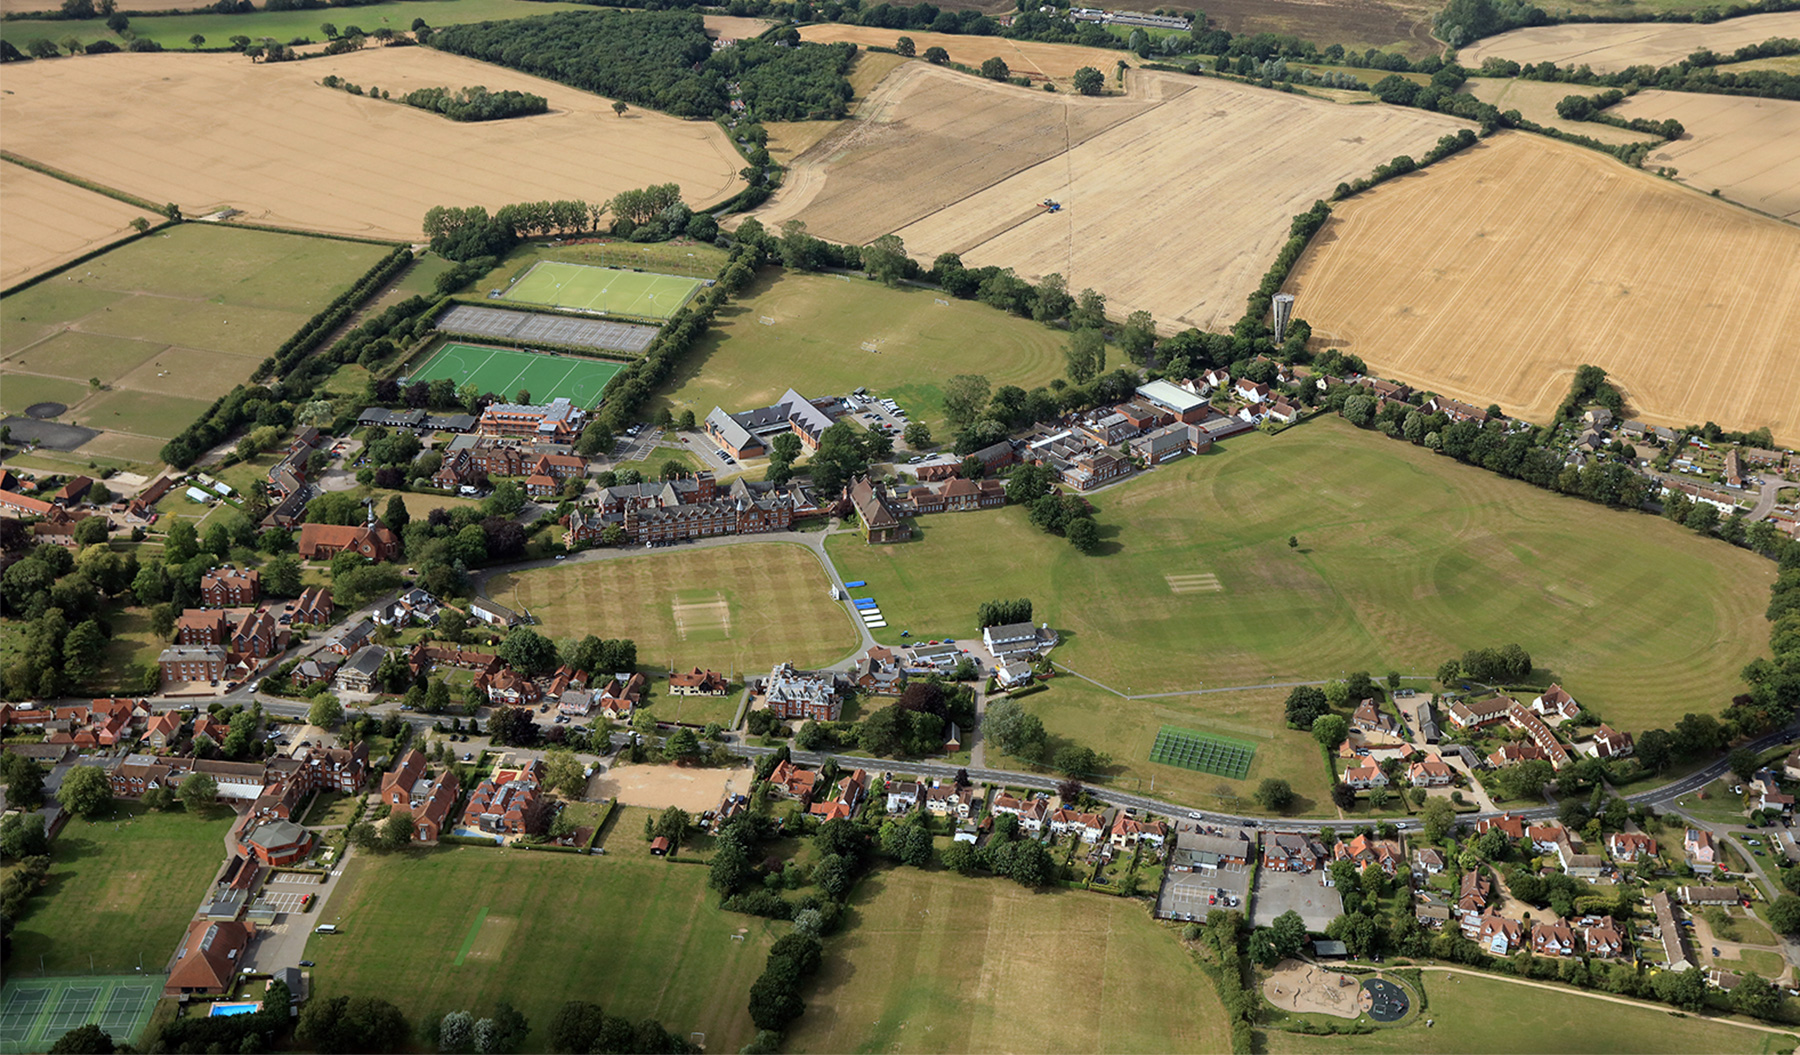 A bird's eye view of the Felsted School campus